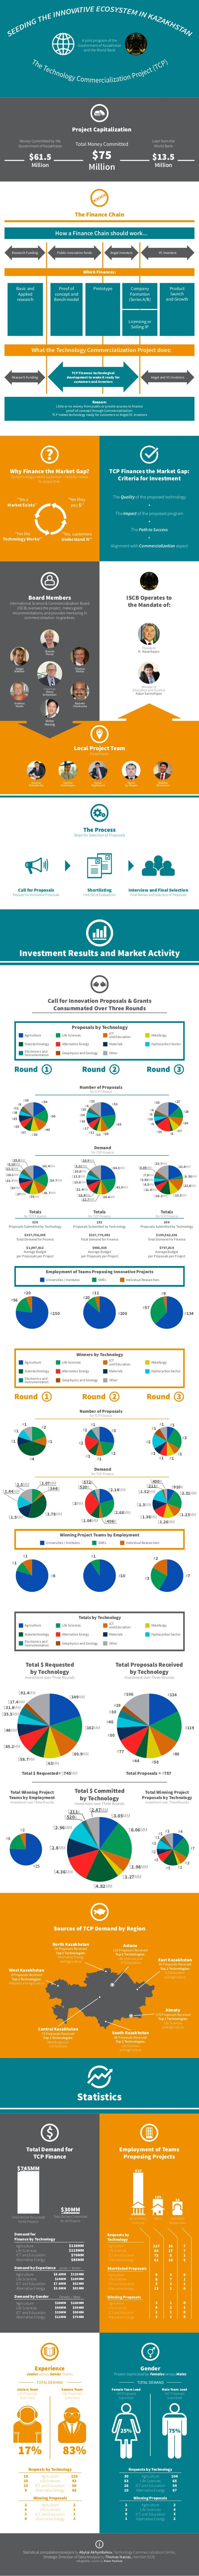 Statistical compilation/analysis by Abylai Akhymbekov, Technology Commercialization Center, Strategic Direction of Data An...